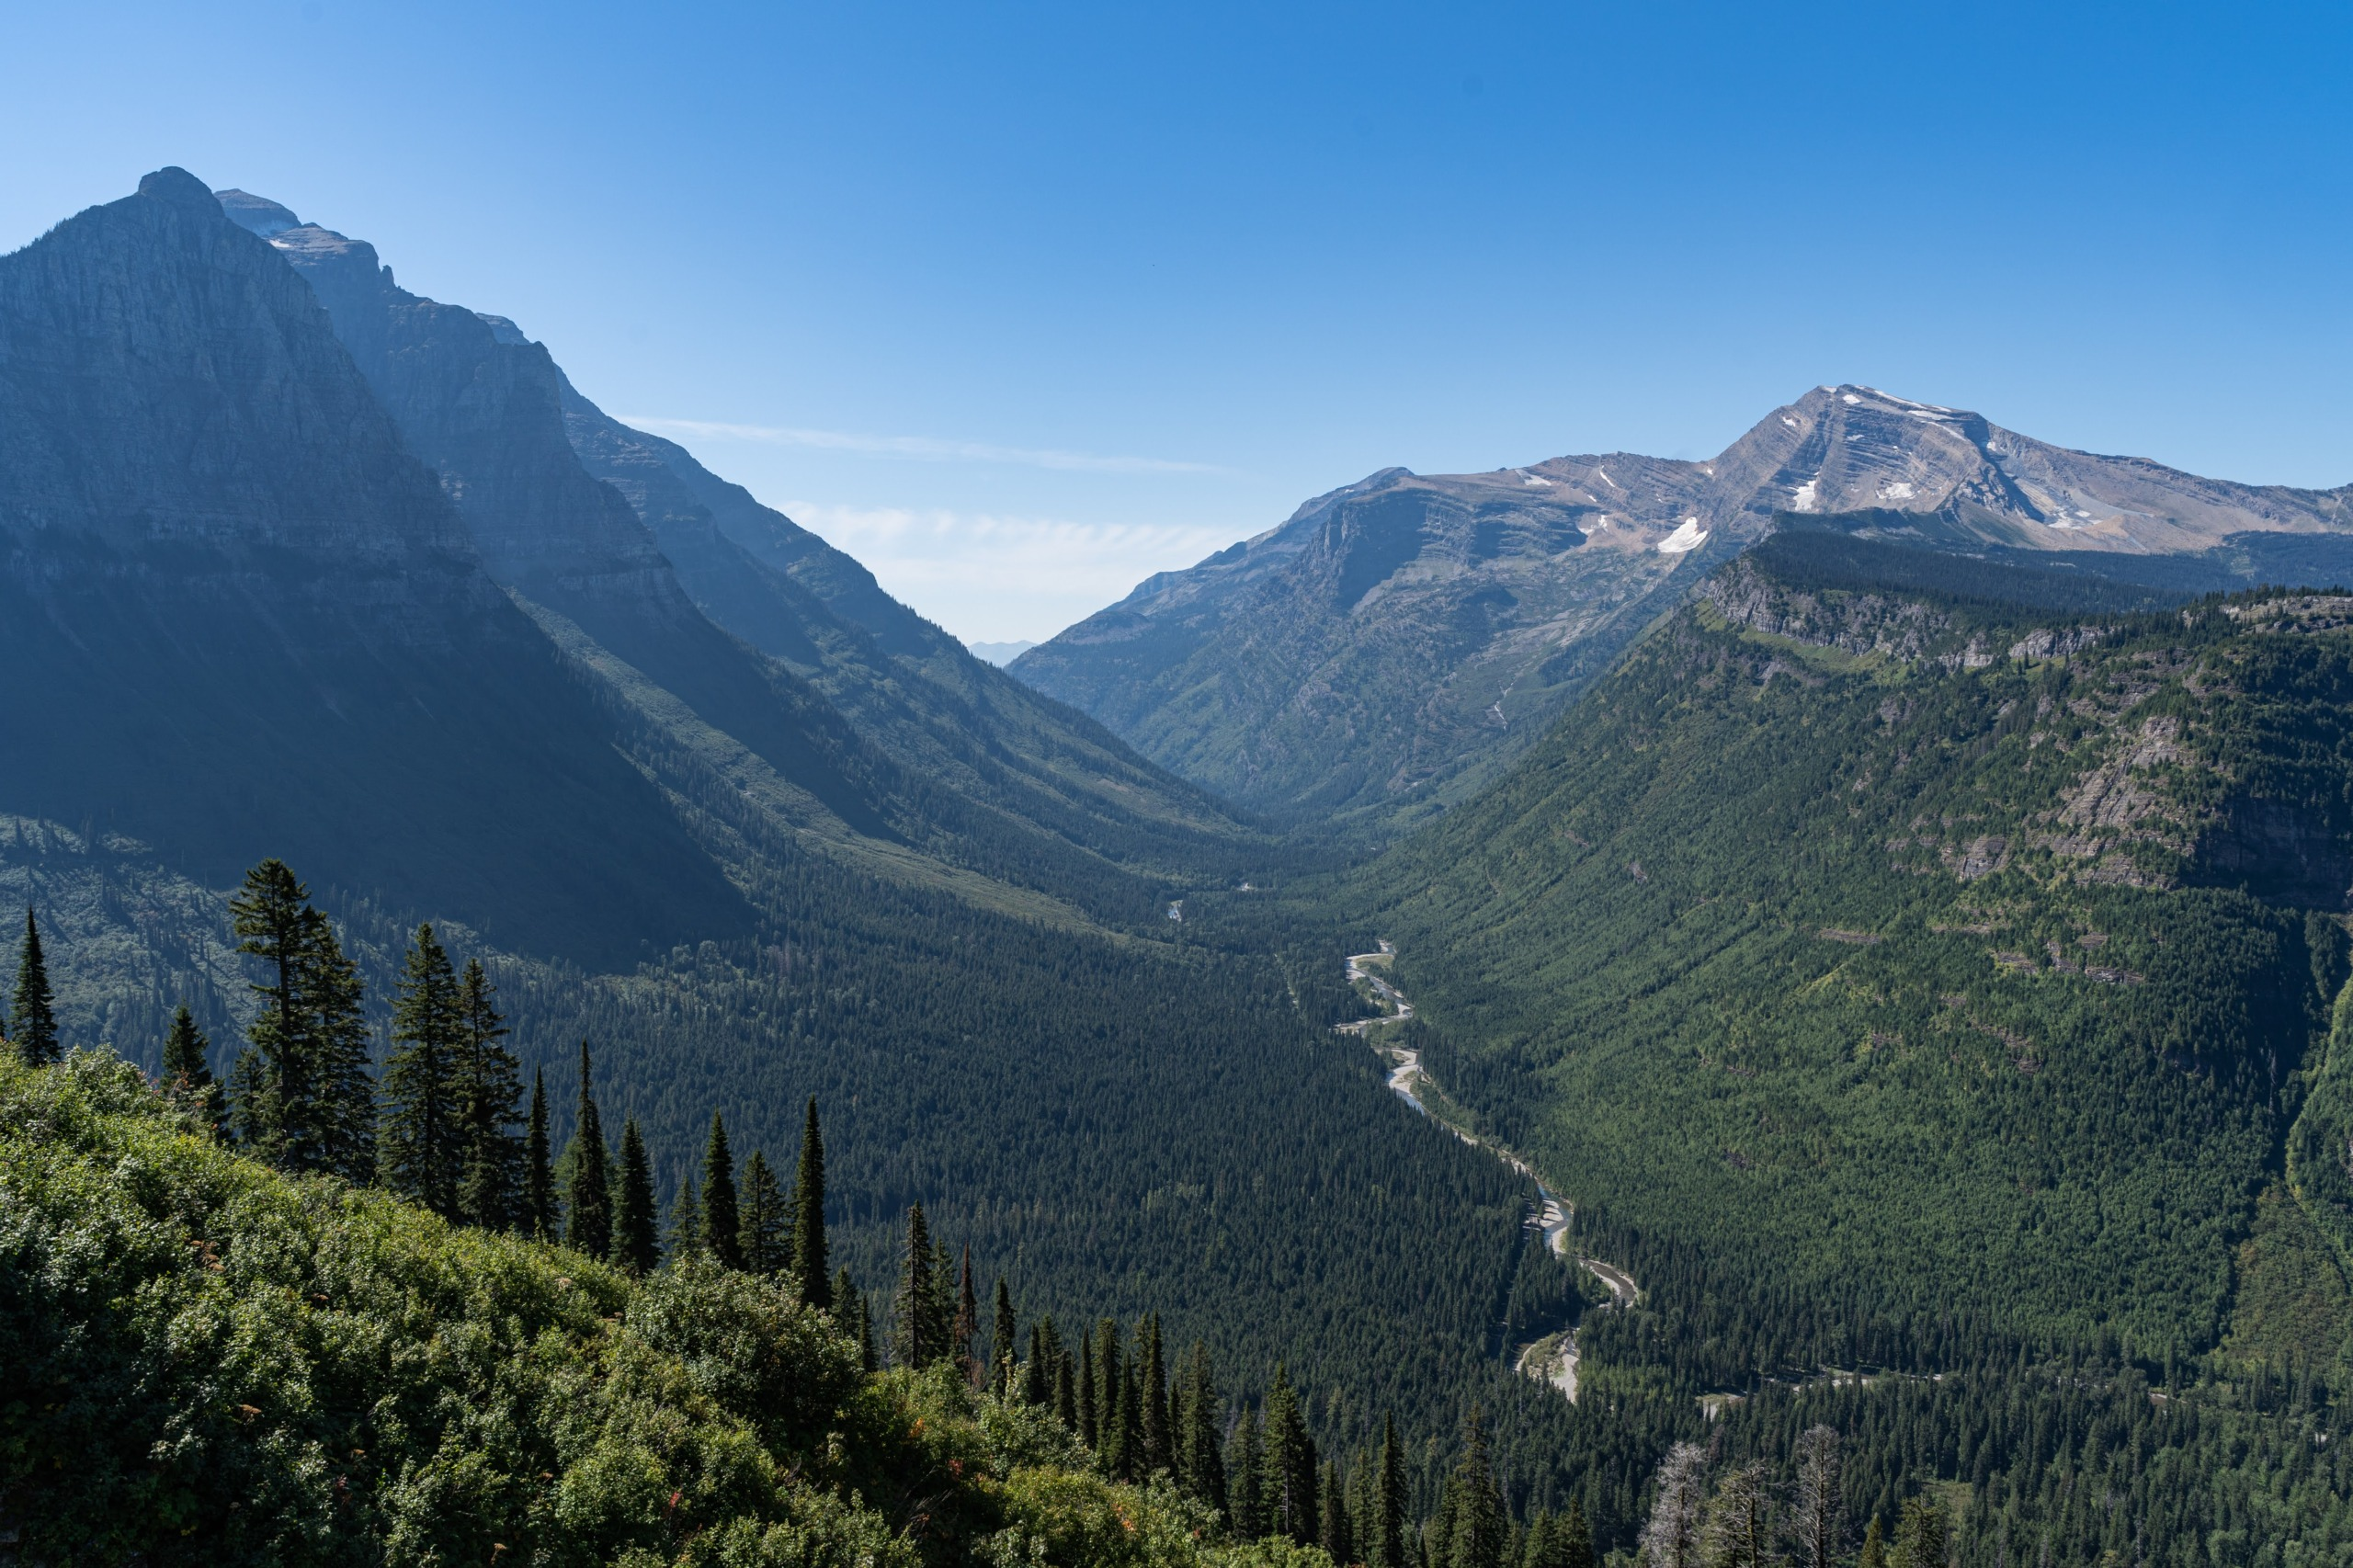 Going-to-the-Sun Road, Glacier National Park, Montana, USA